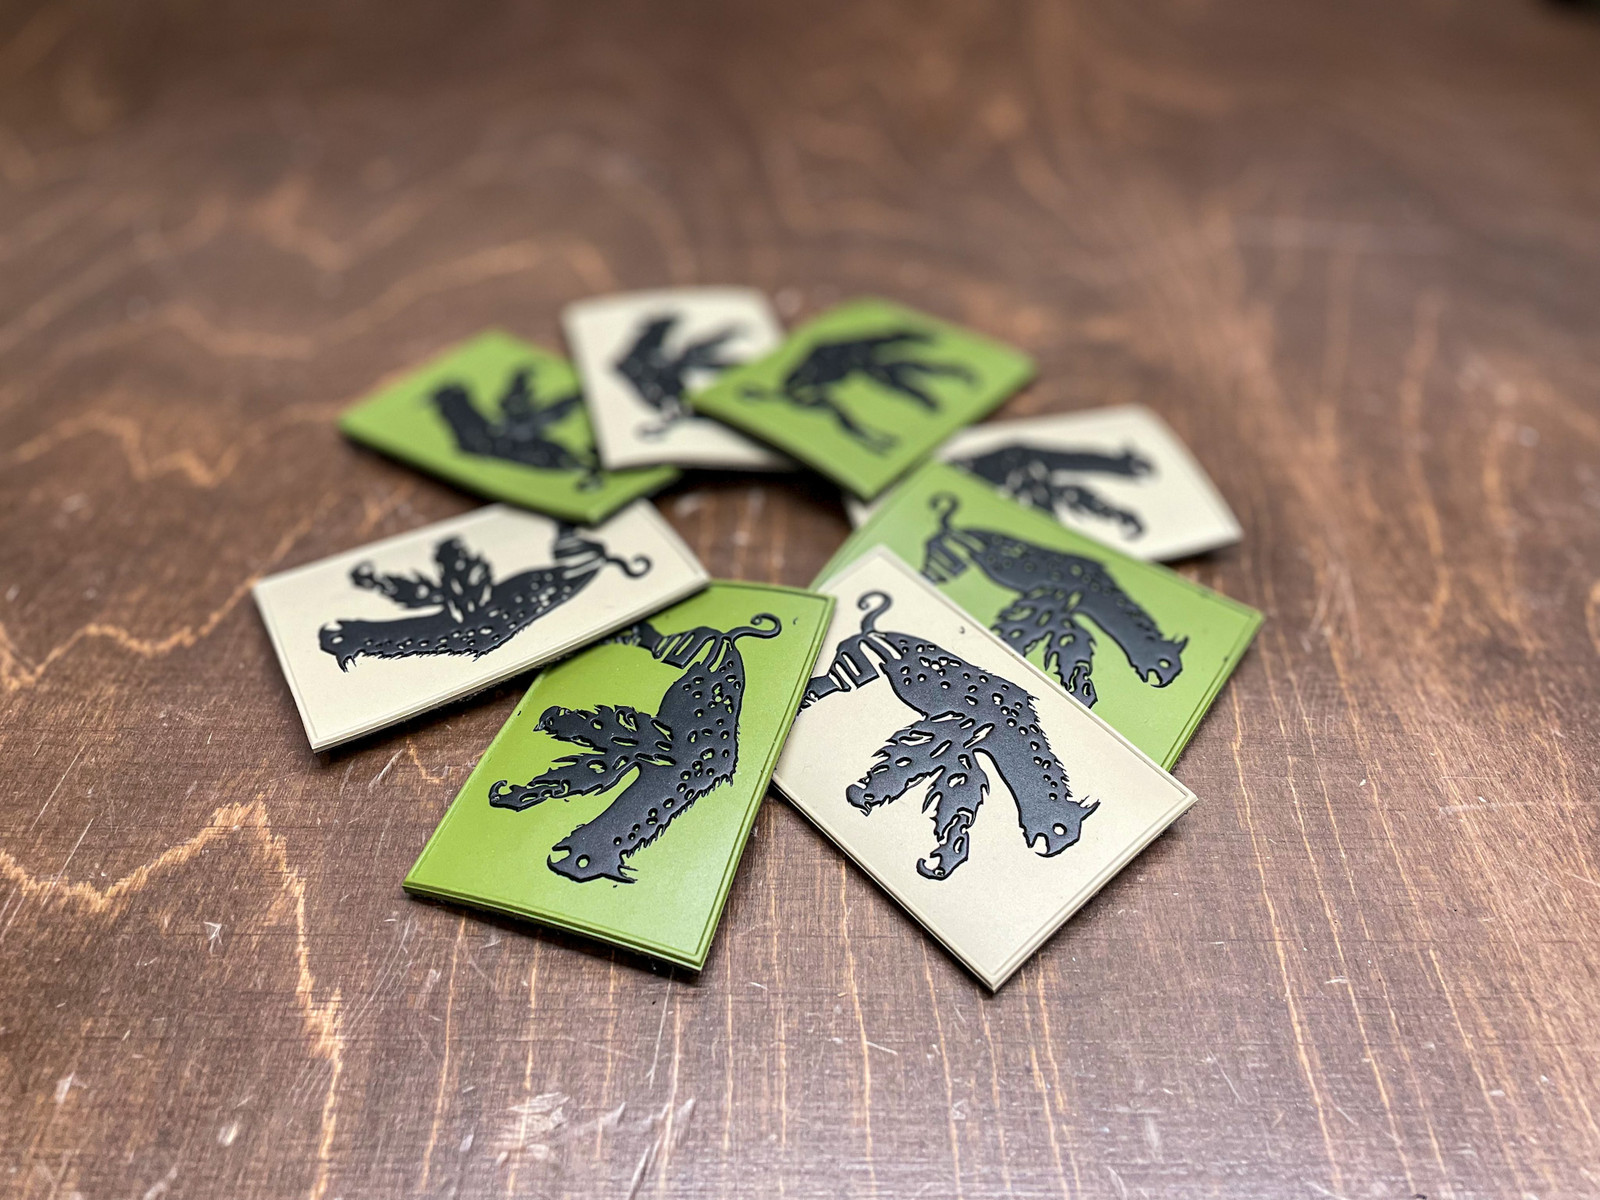 Picture of OD Green and FDE patches of the Abel Creature, laid out in a round configuration on a work bench.